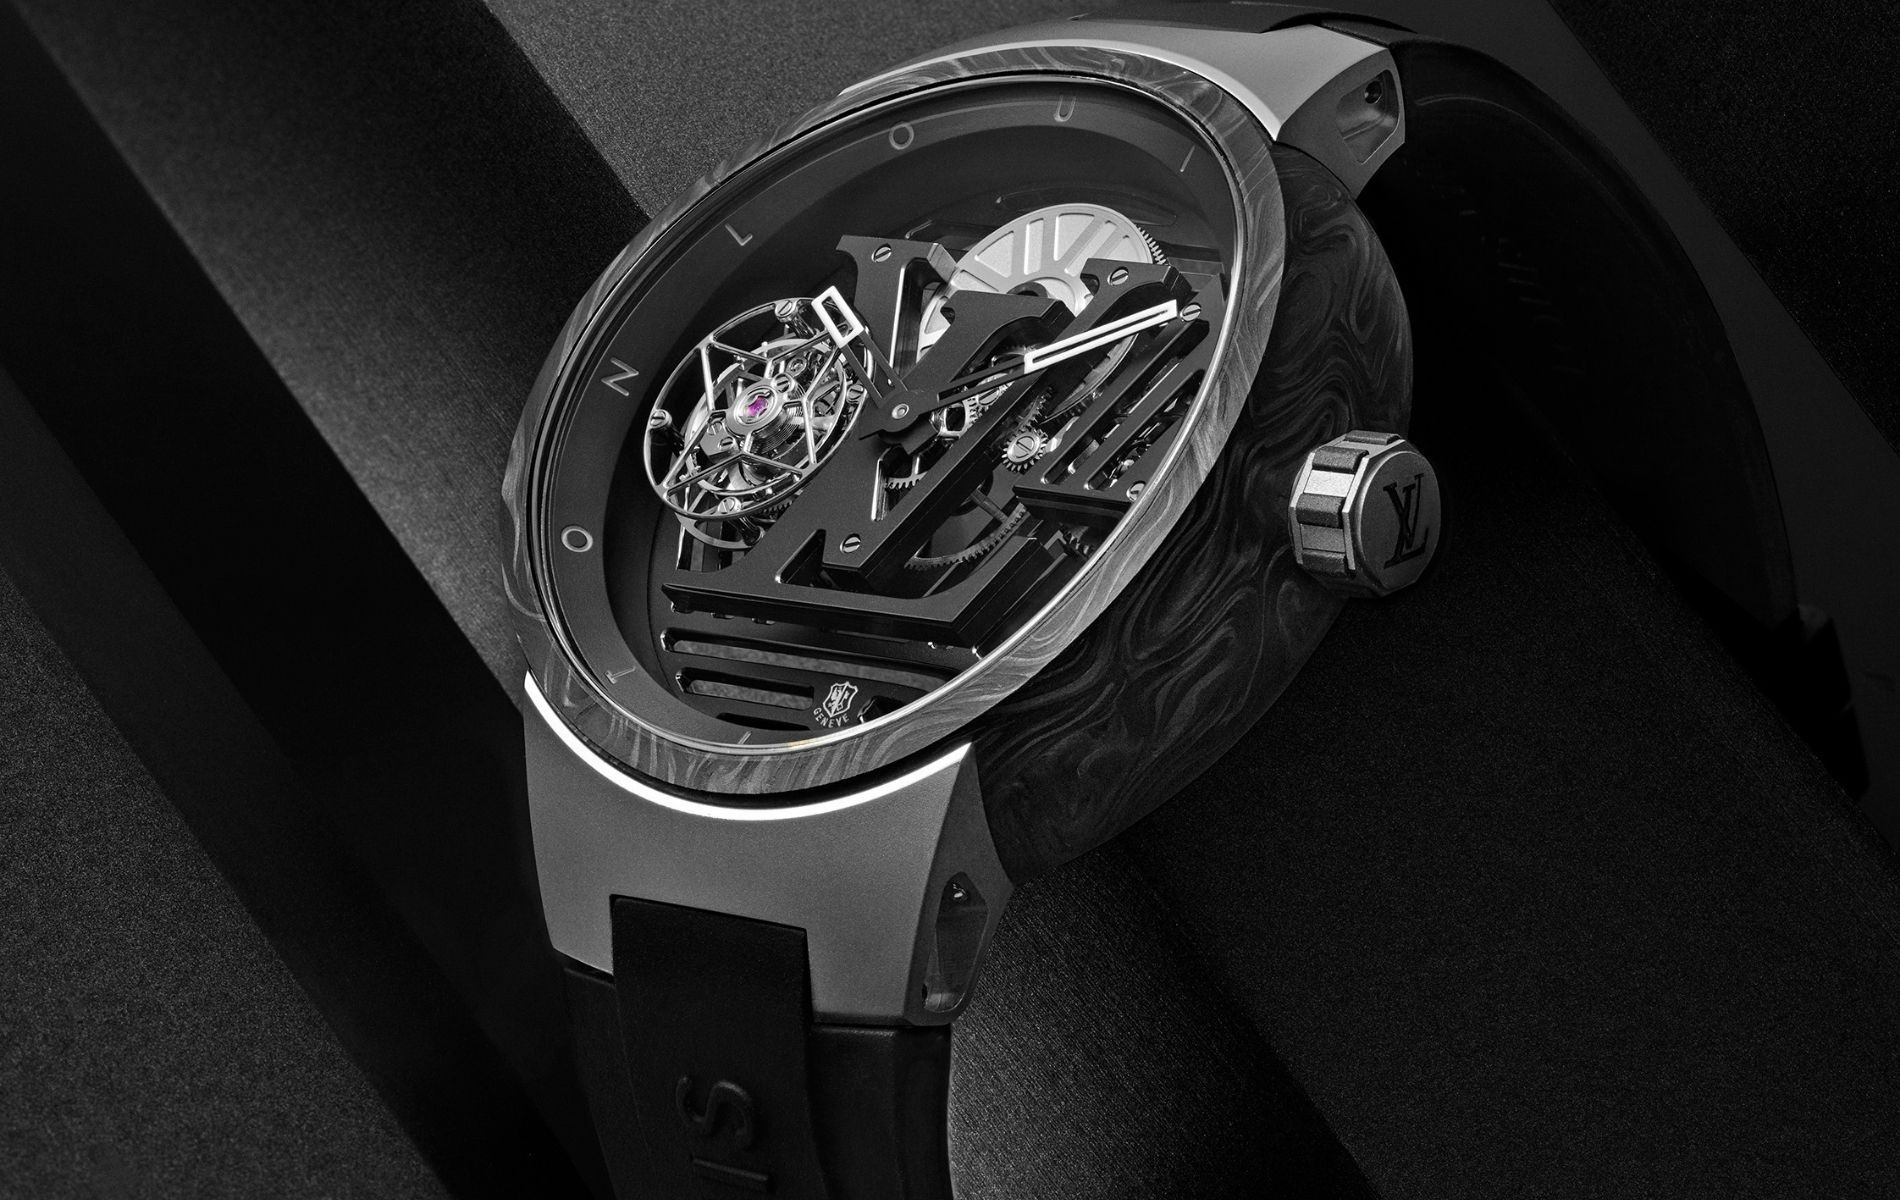 Meet the Tambour Curve Flying Tourbillon Poincon de Genève, Louis Vuitton's Luxurious New Watch